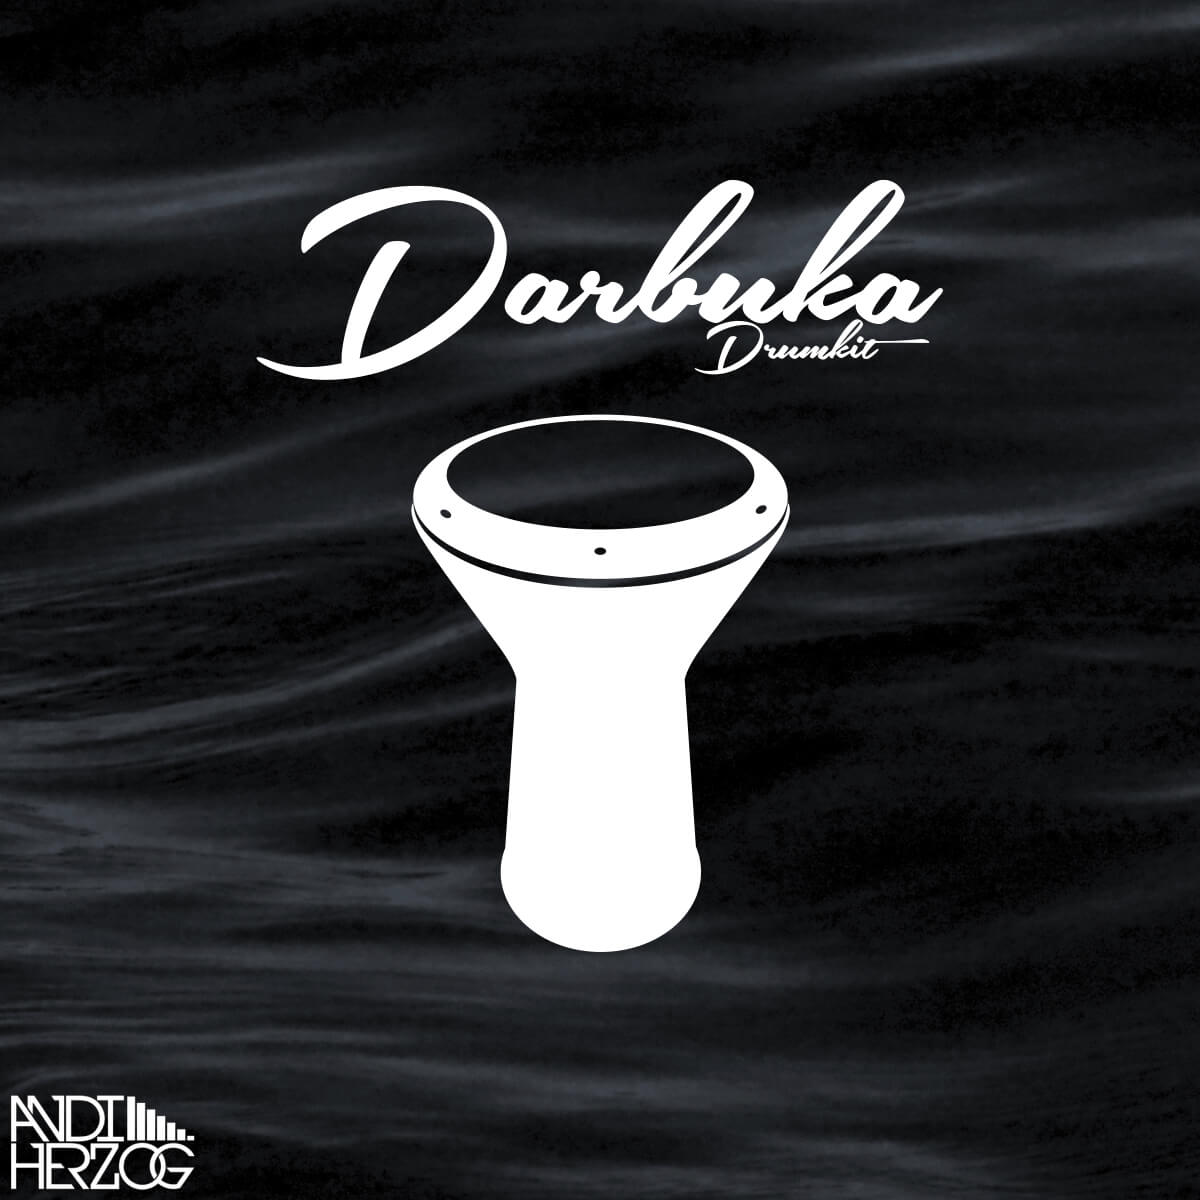 Darbuka Drumkit Download